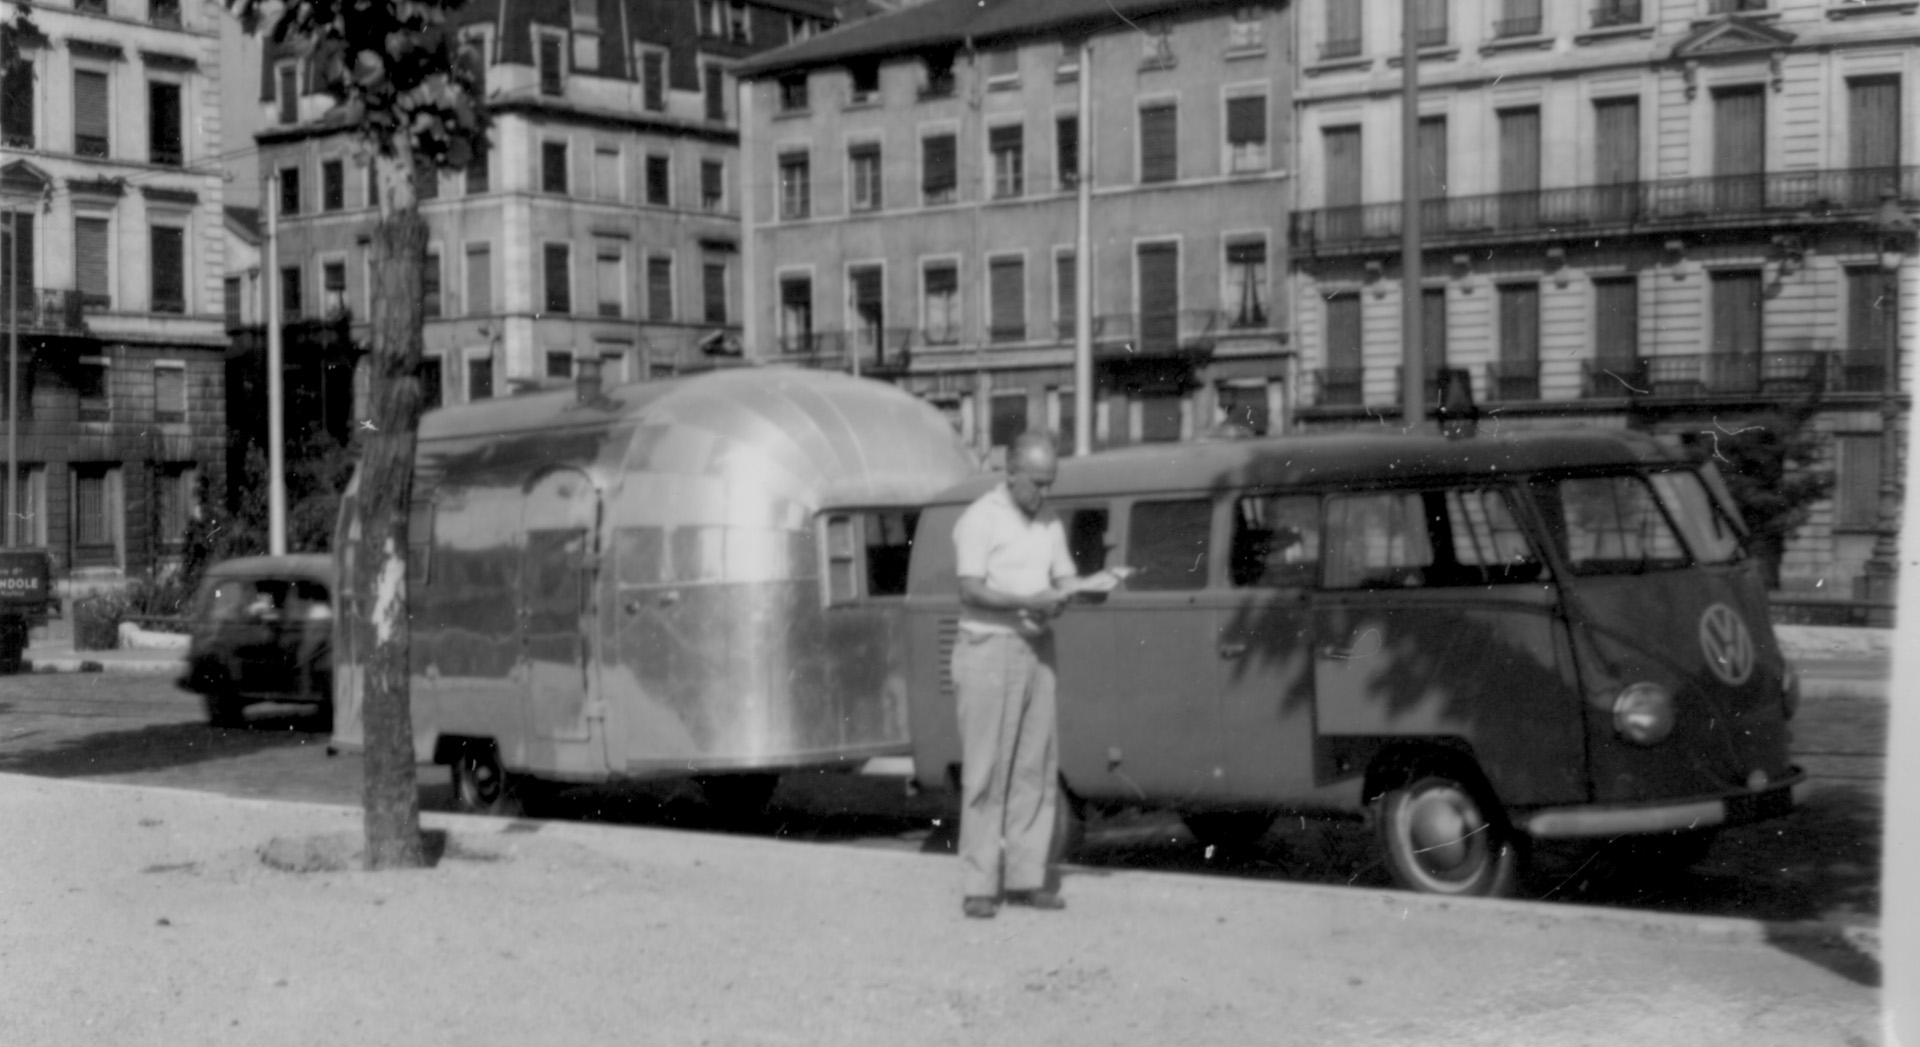 1953 European Trailer Rally Wally with VW Van-Courtesy of the Estate of Helen Byam Schwamborn